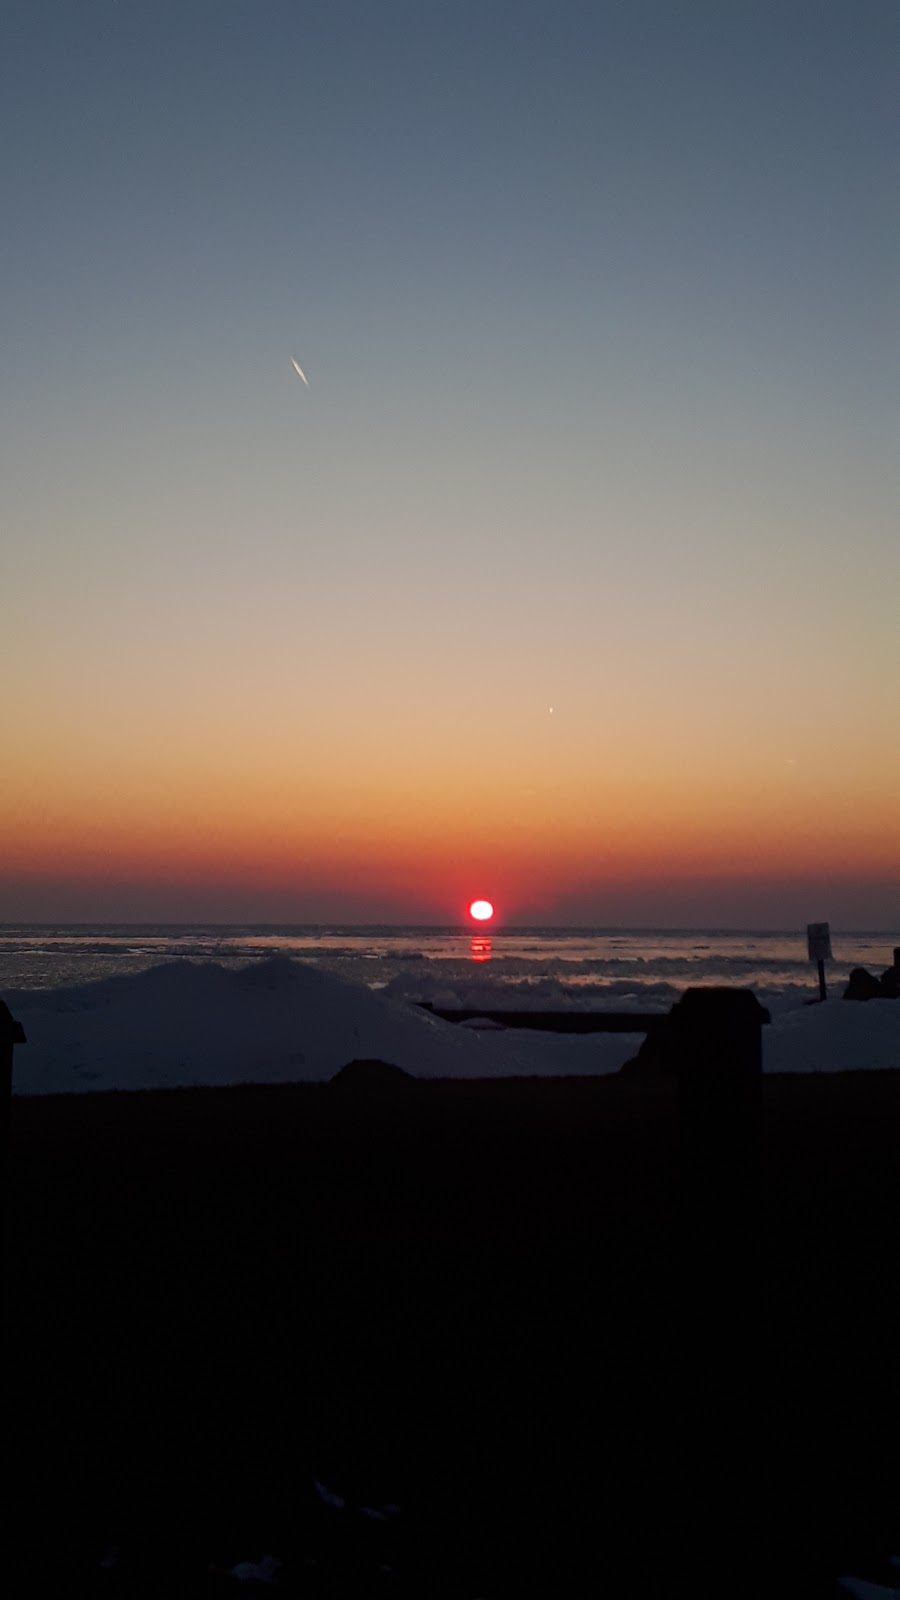 Another Sunset by the Bay | lodging | 728 Point Pelee Dr, Leamington, ON N8H 3V4, Canada | 5197960306 OR +1 519-796-0306